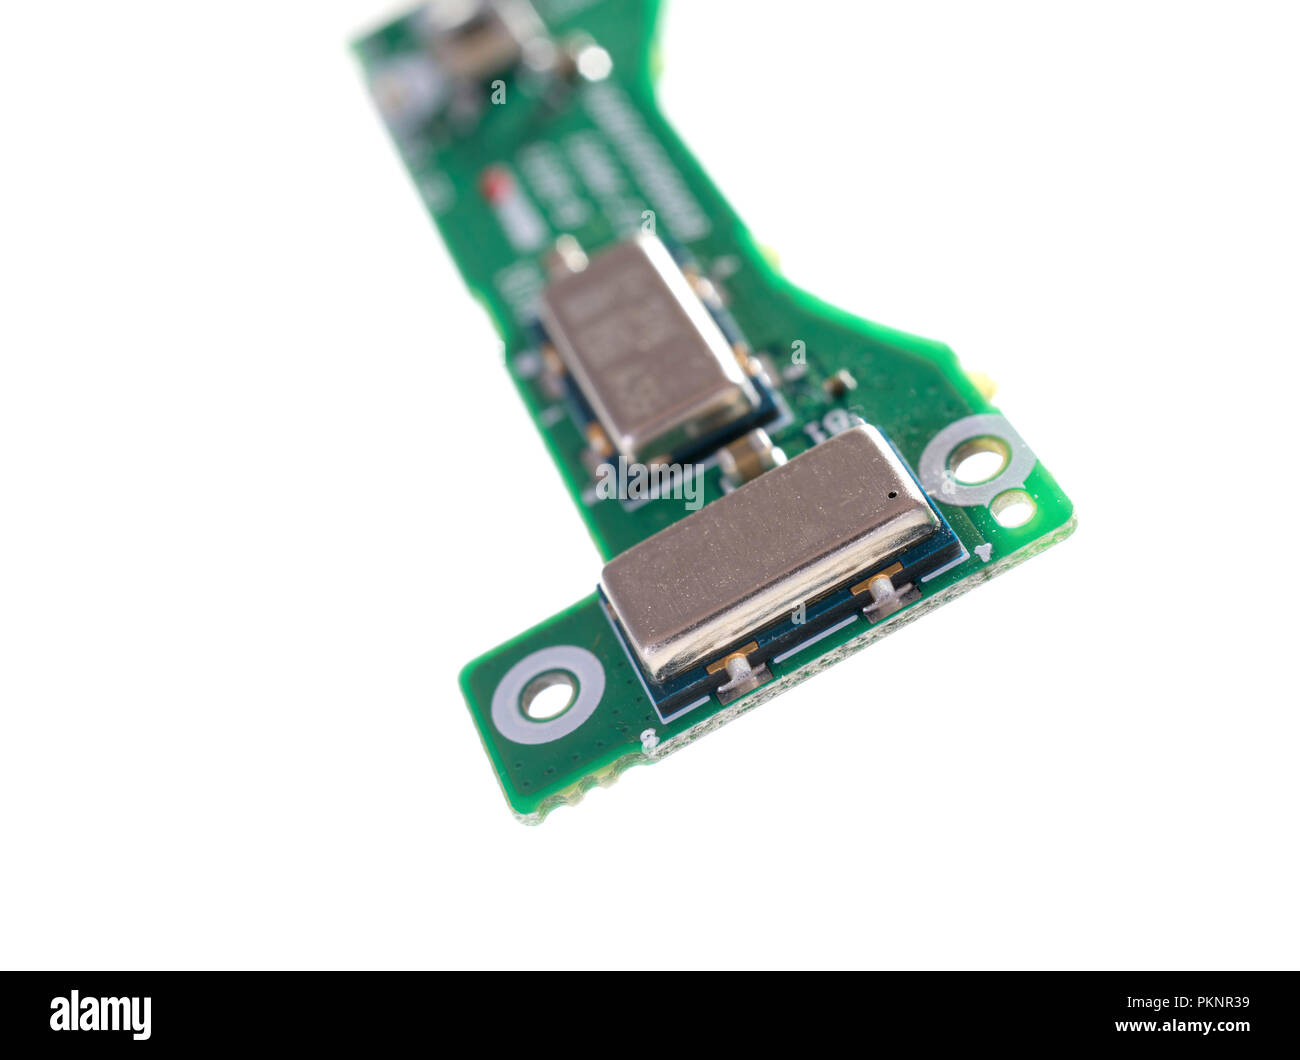 Accelerometer and gyroscope chip. - Stock Image